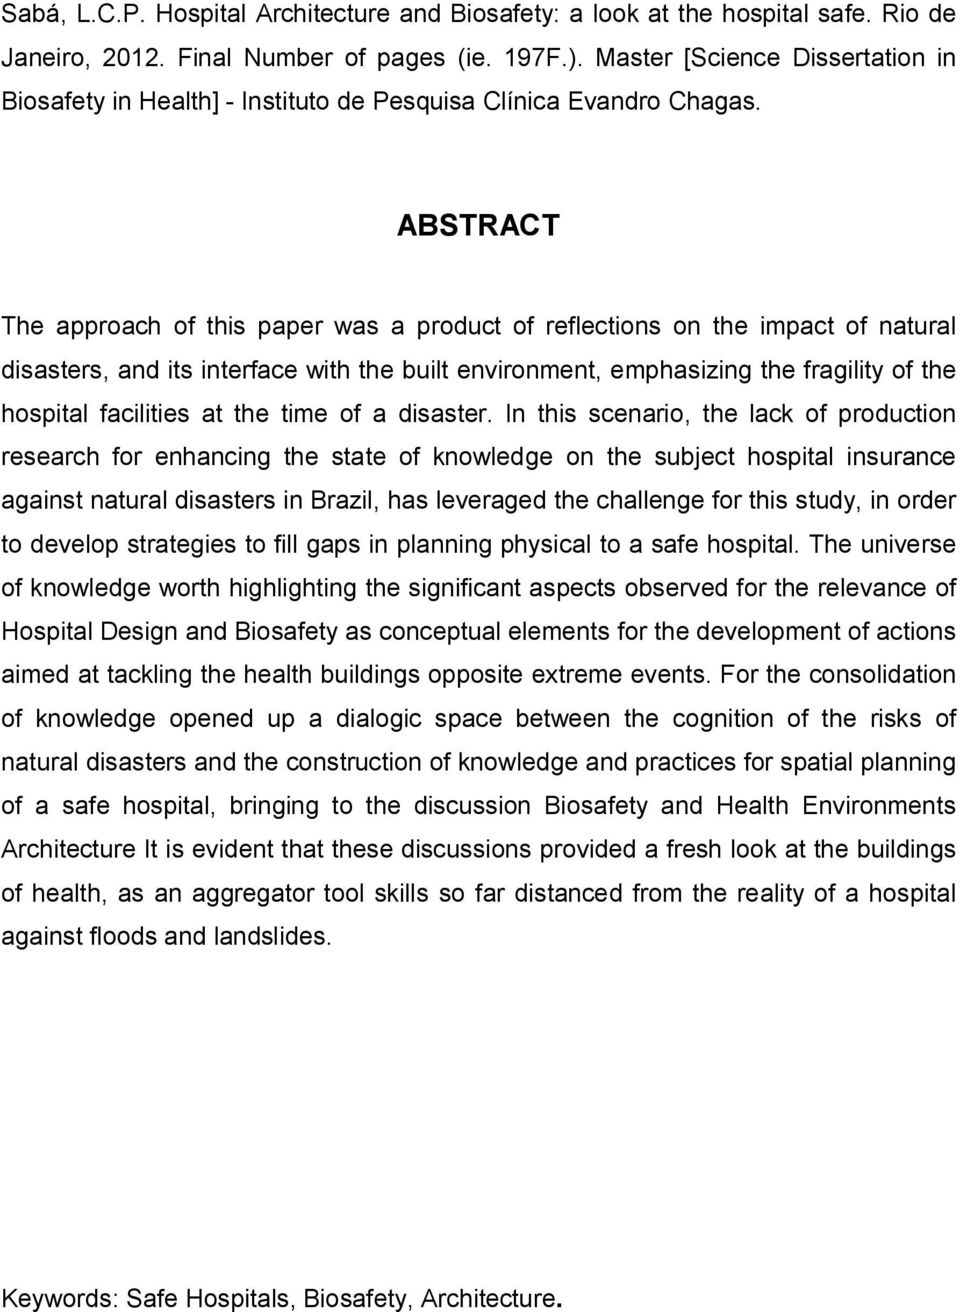 ABSTRACT The approach of this paper was a product of reflections on the impact of natural disasters, and its interface with the built environment, emphasizing the fragility of the hospital facilities